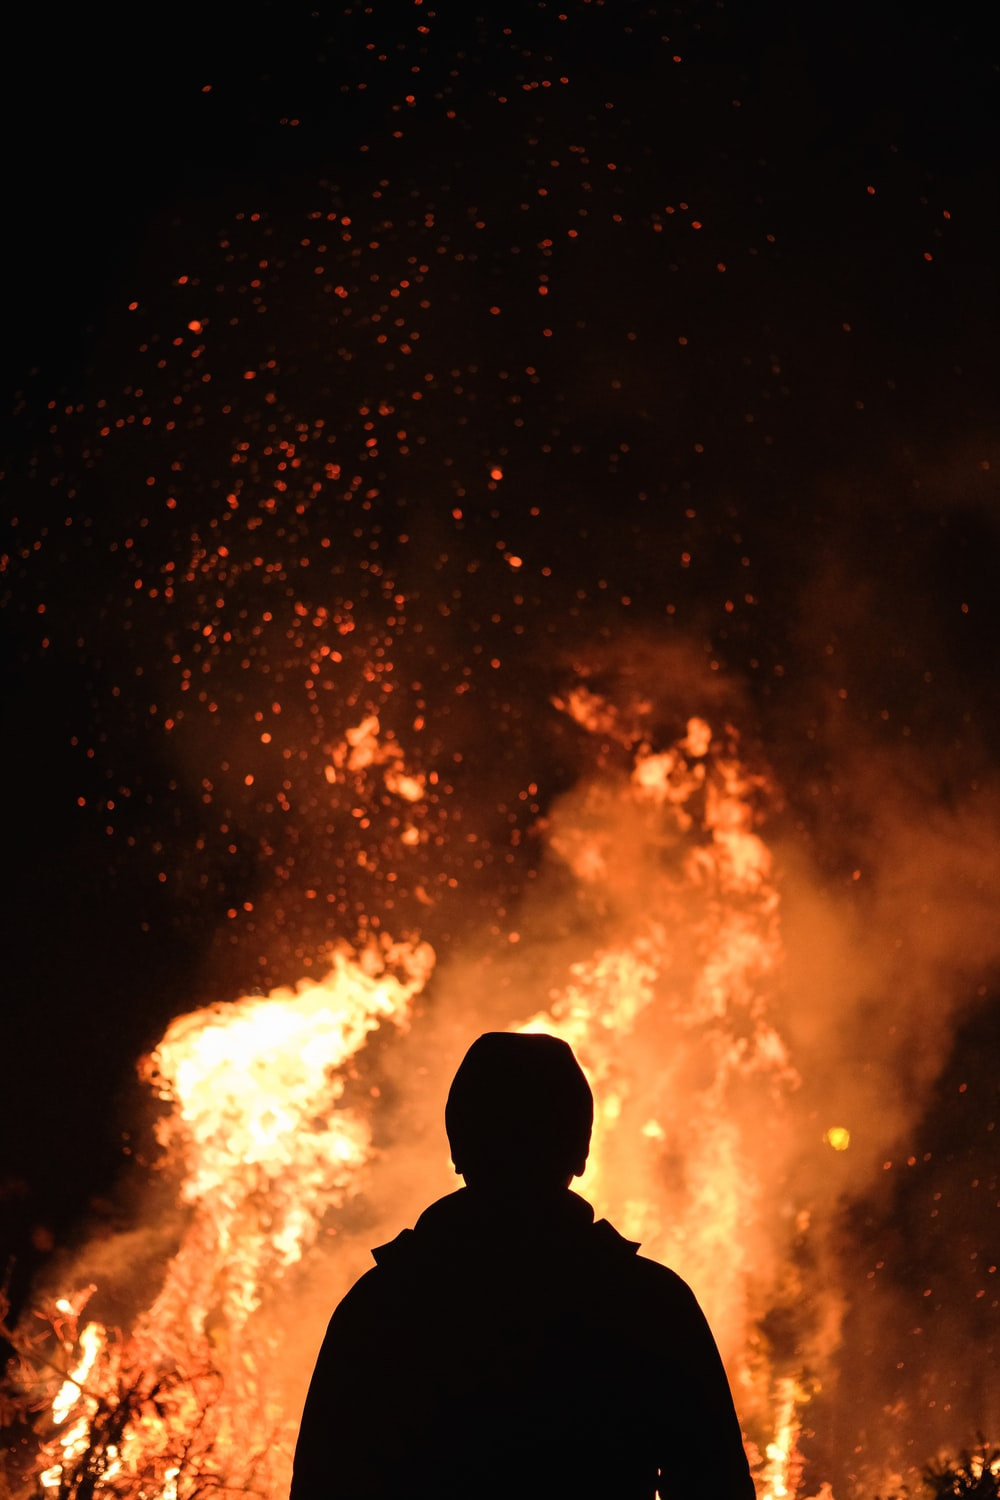 person standing in front of fire photo – Free Fire Image on Unsplash